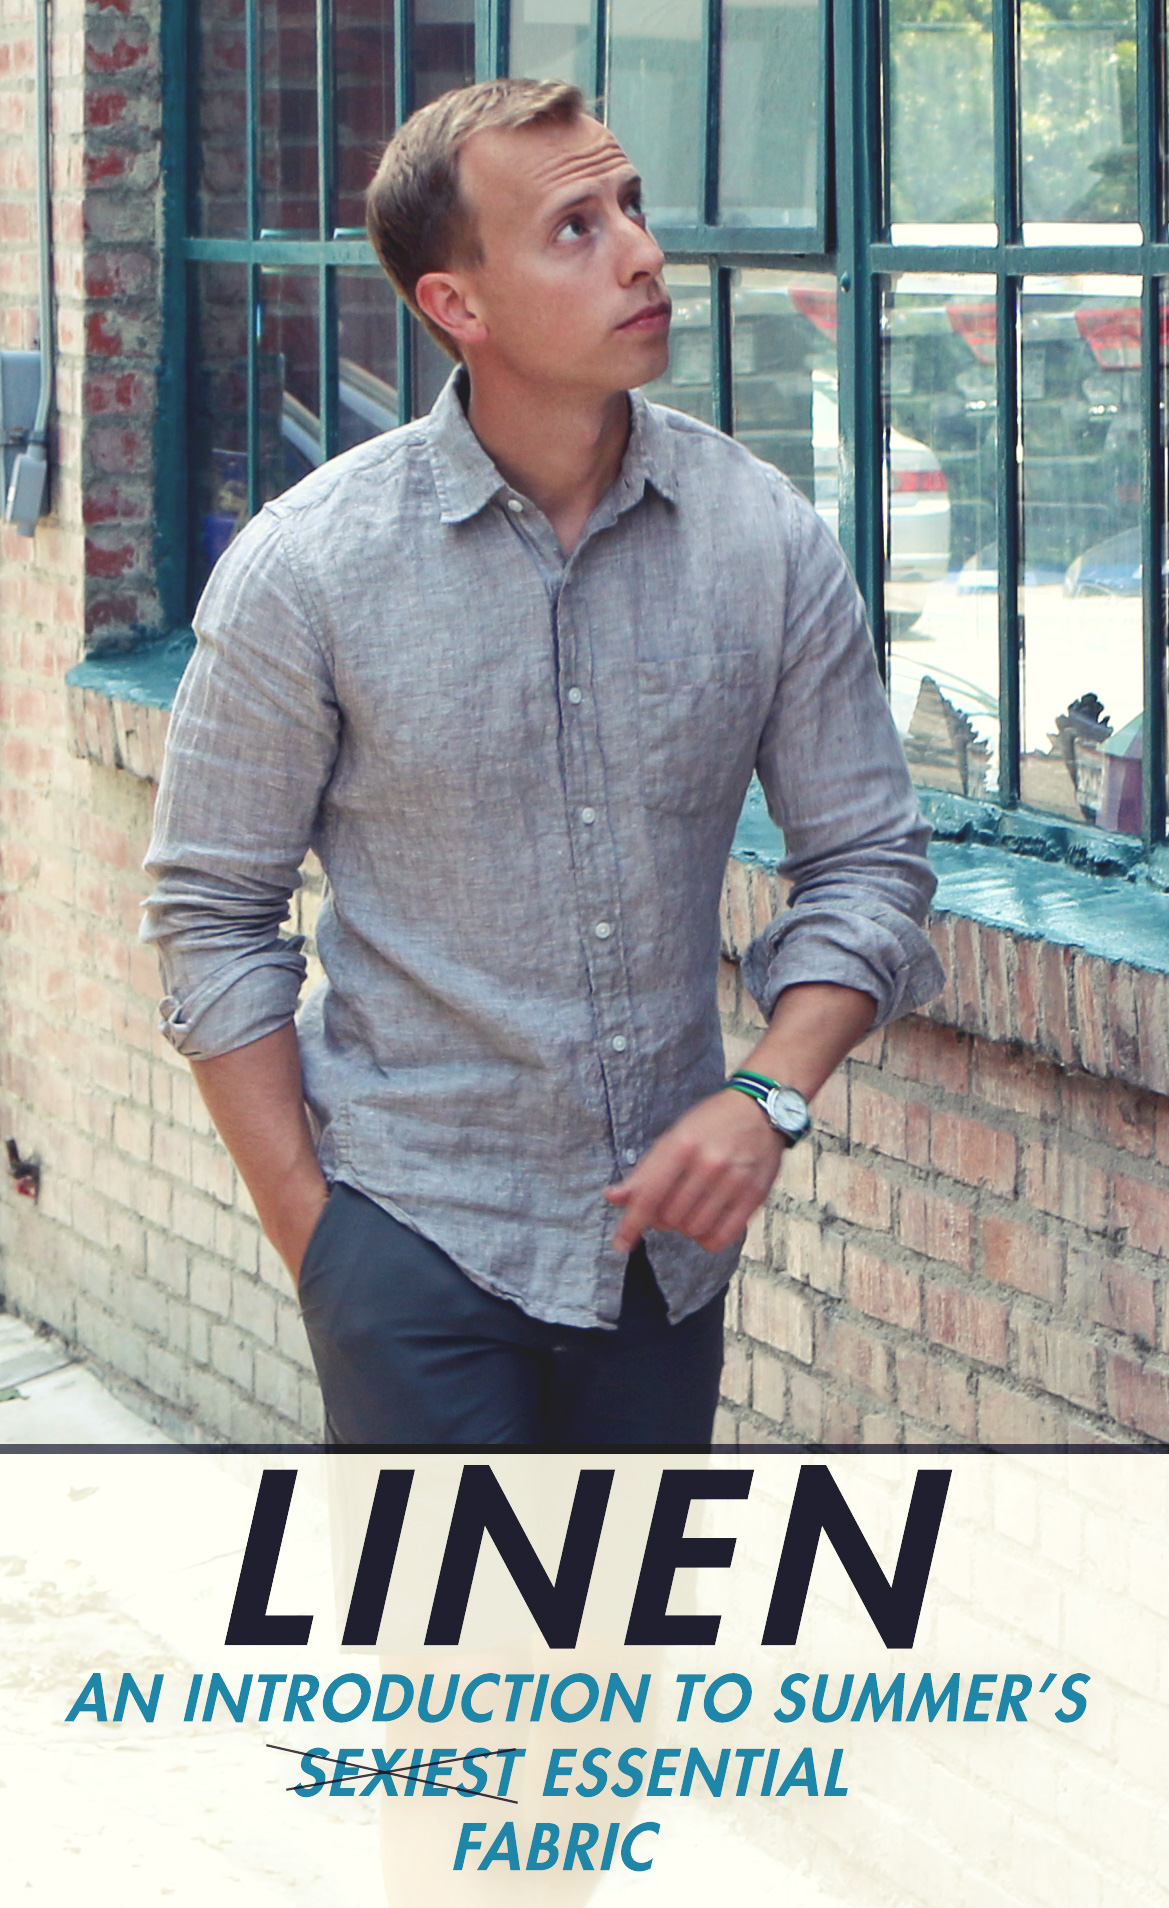 Linen: An Introduction to Summer's Essential Fabrc - Men's Style